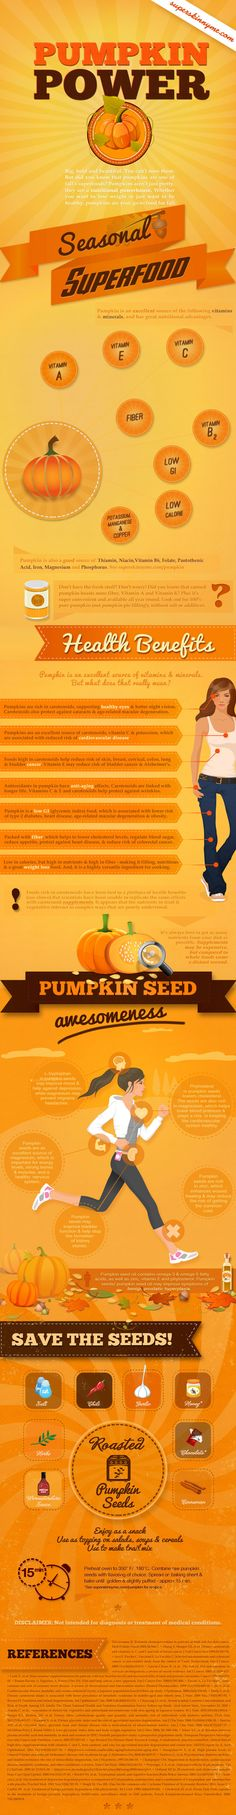 Pumpkin Power Infographic